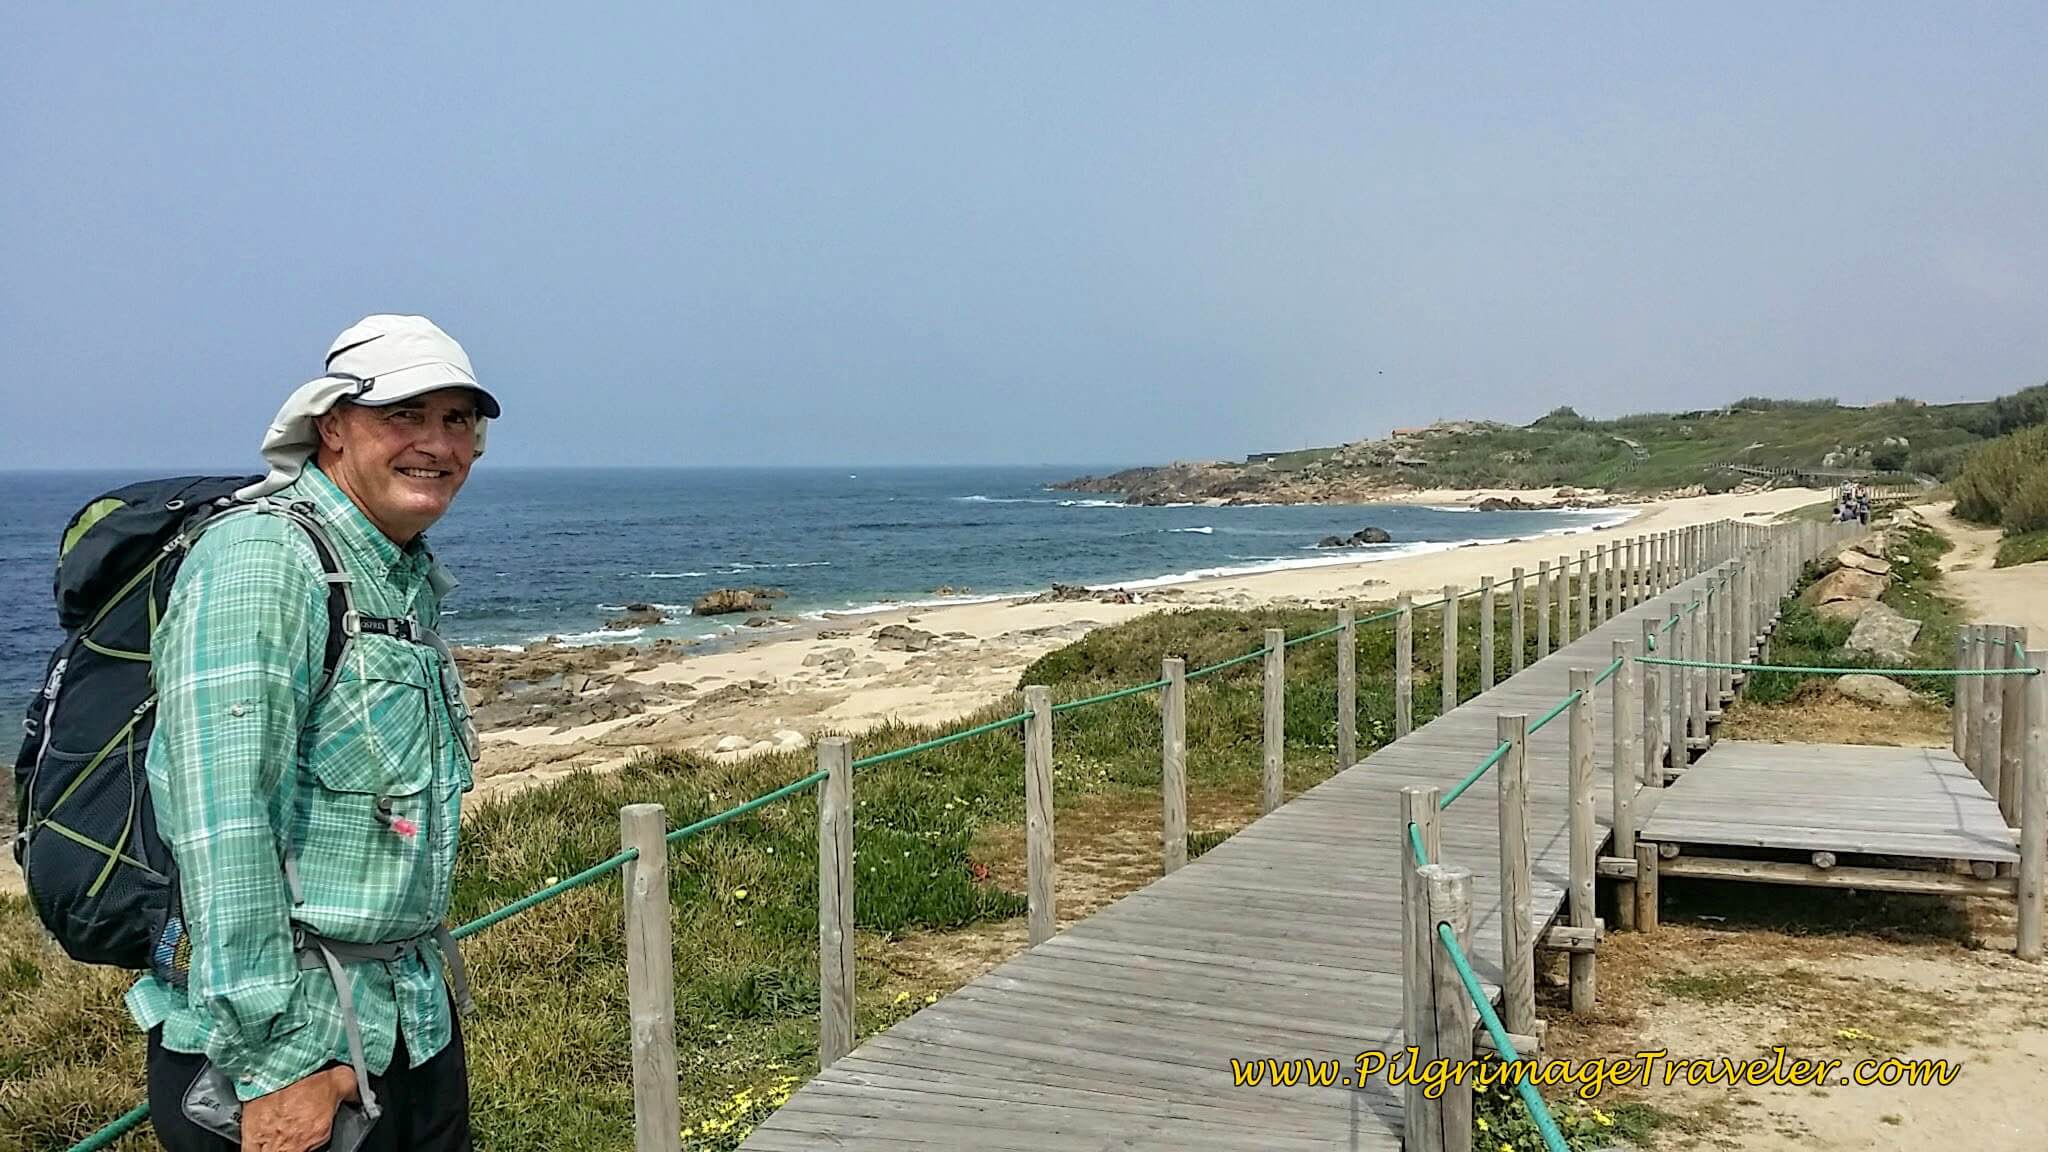 Rob, the Aussie, Walking the Boardwalk Toward São Paio on day fifteen of the Camino Portugués on the Senda Litoral